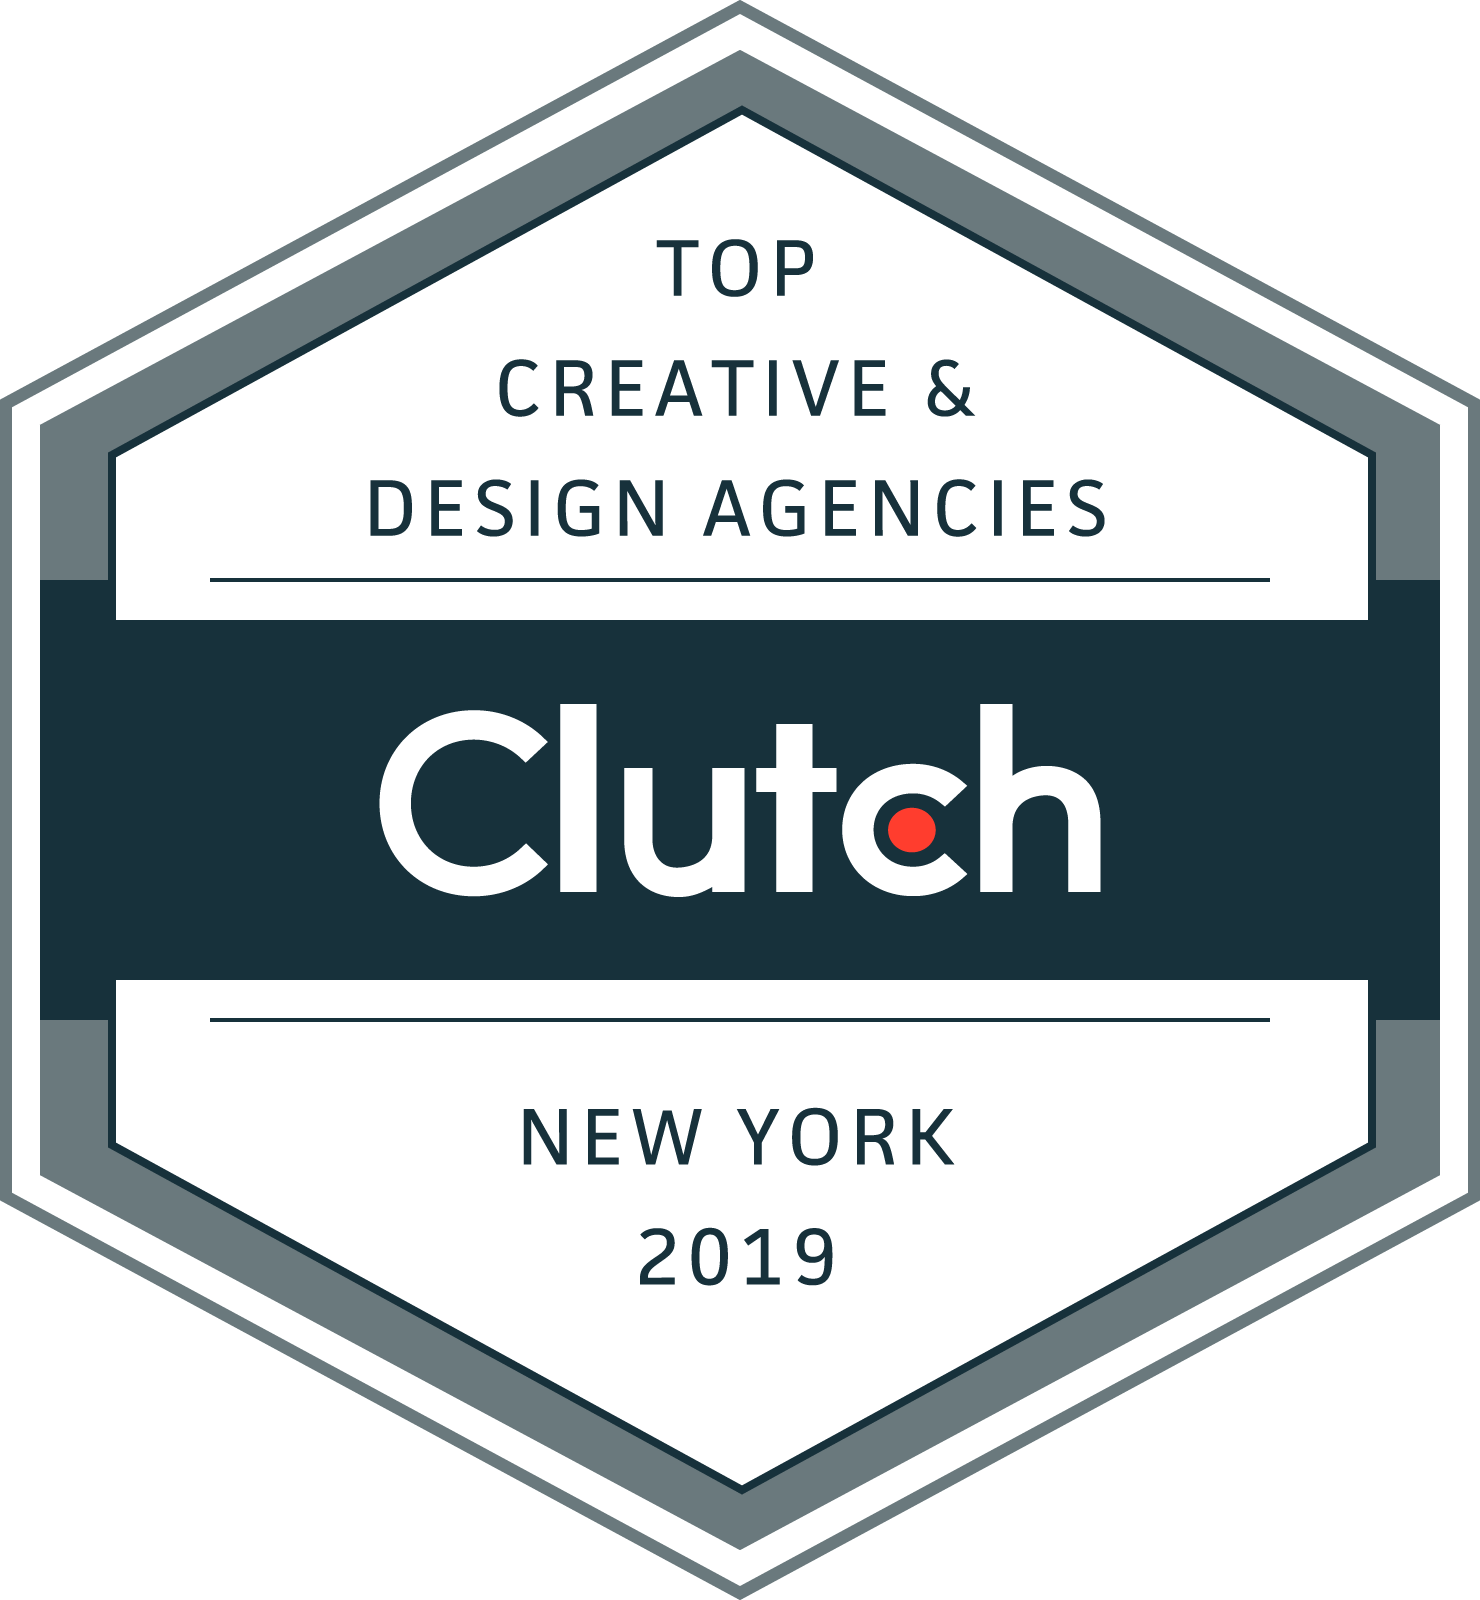 Top creative and design agencies